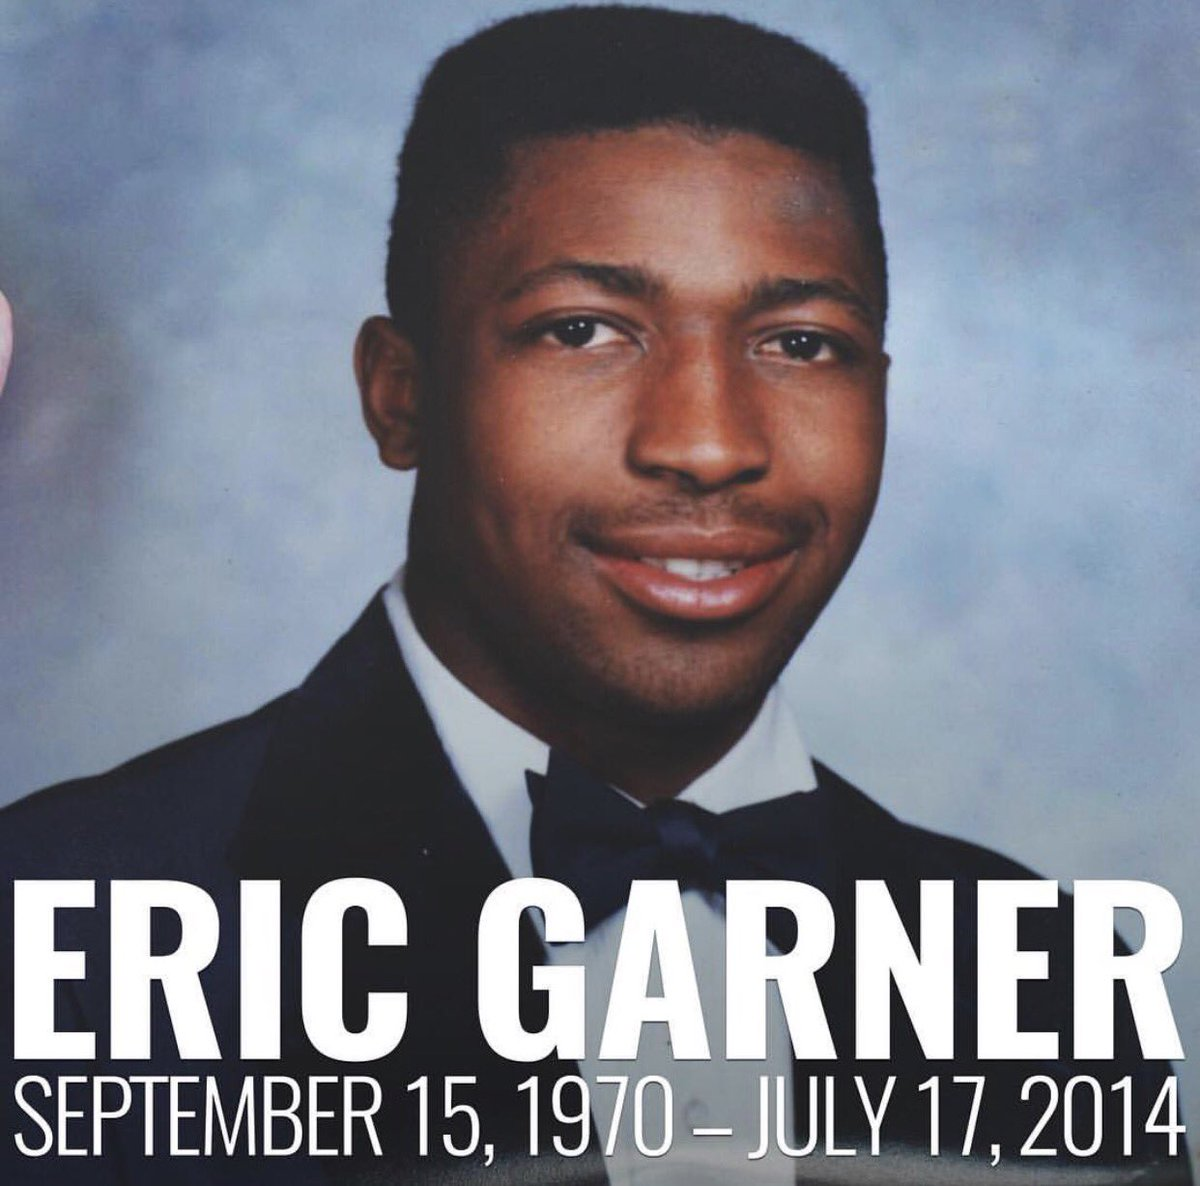 NYPD files formal departmental charges against officers in Eric Garner case